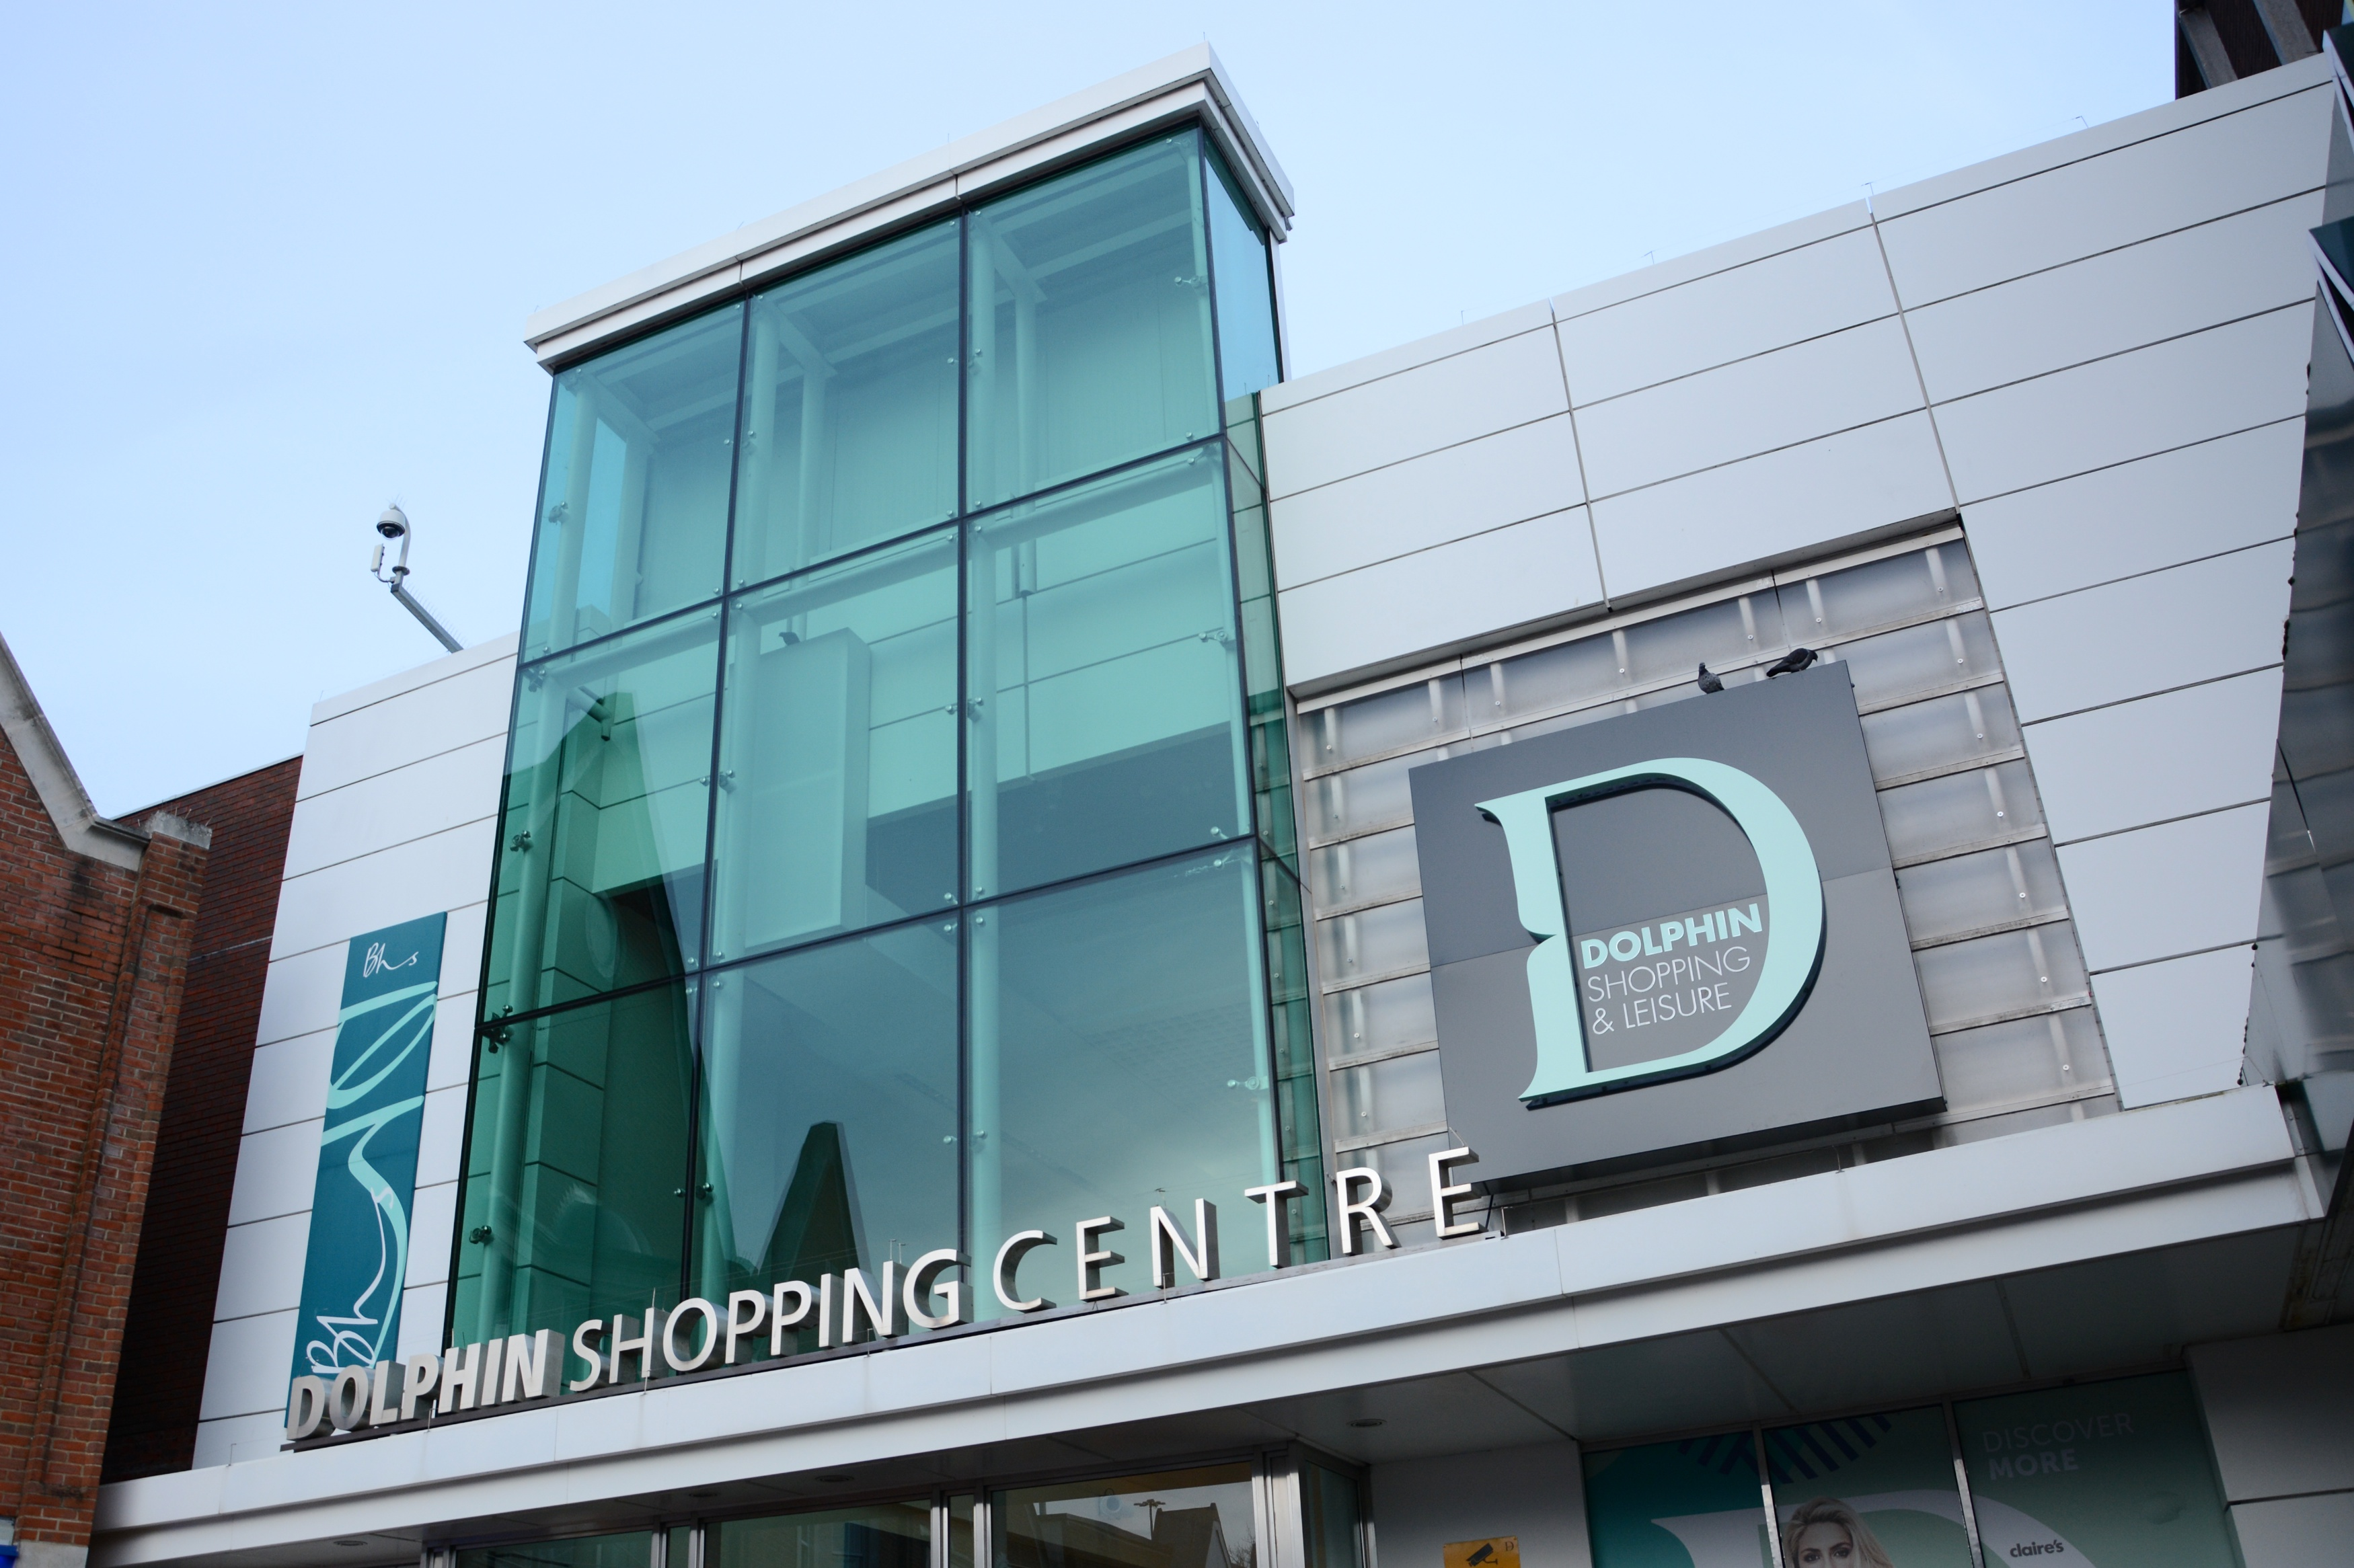 The Mayor and High Sheriff of Poole will visit Dolphin Shopping Centre for Armistice Day